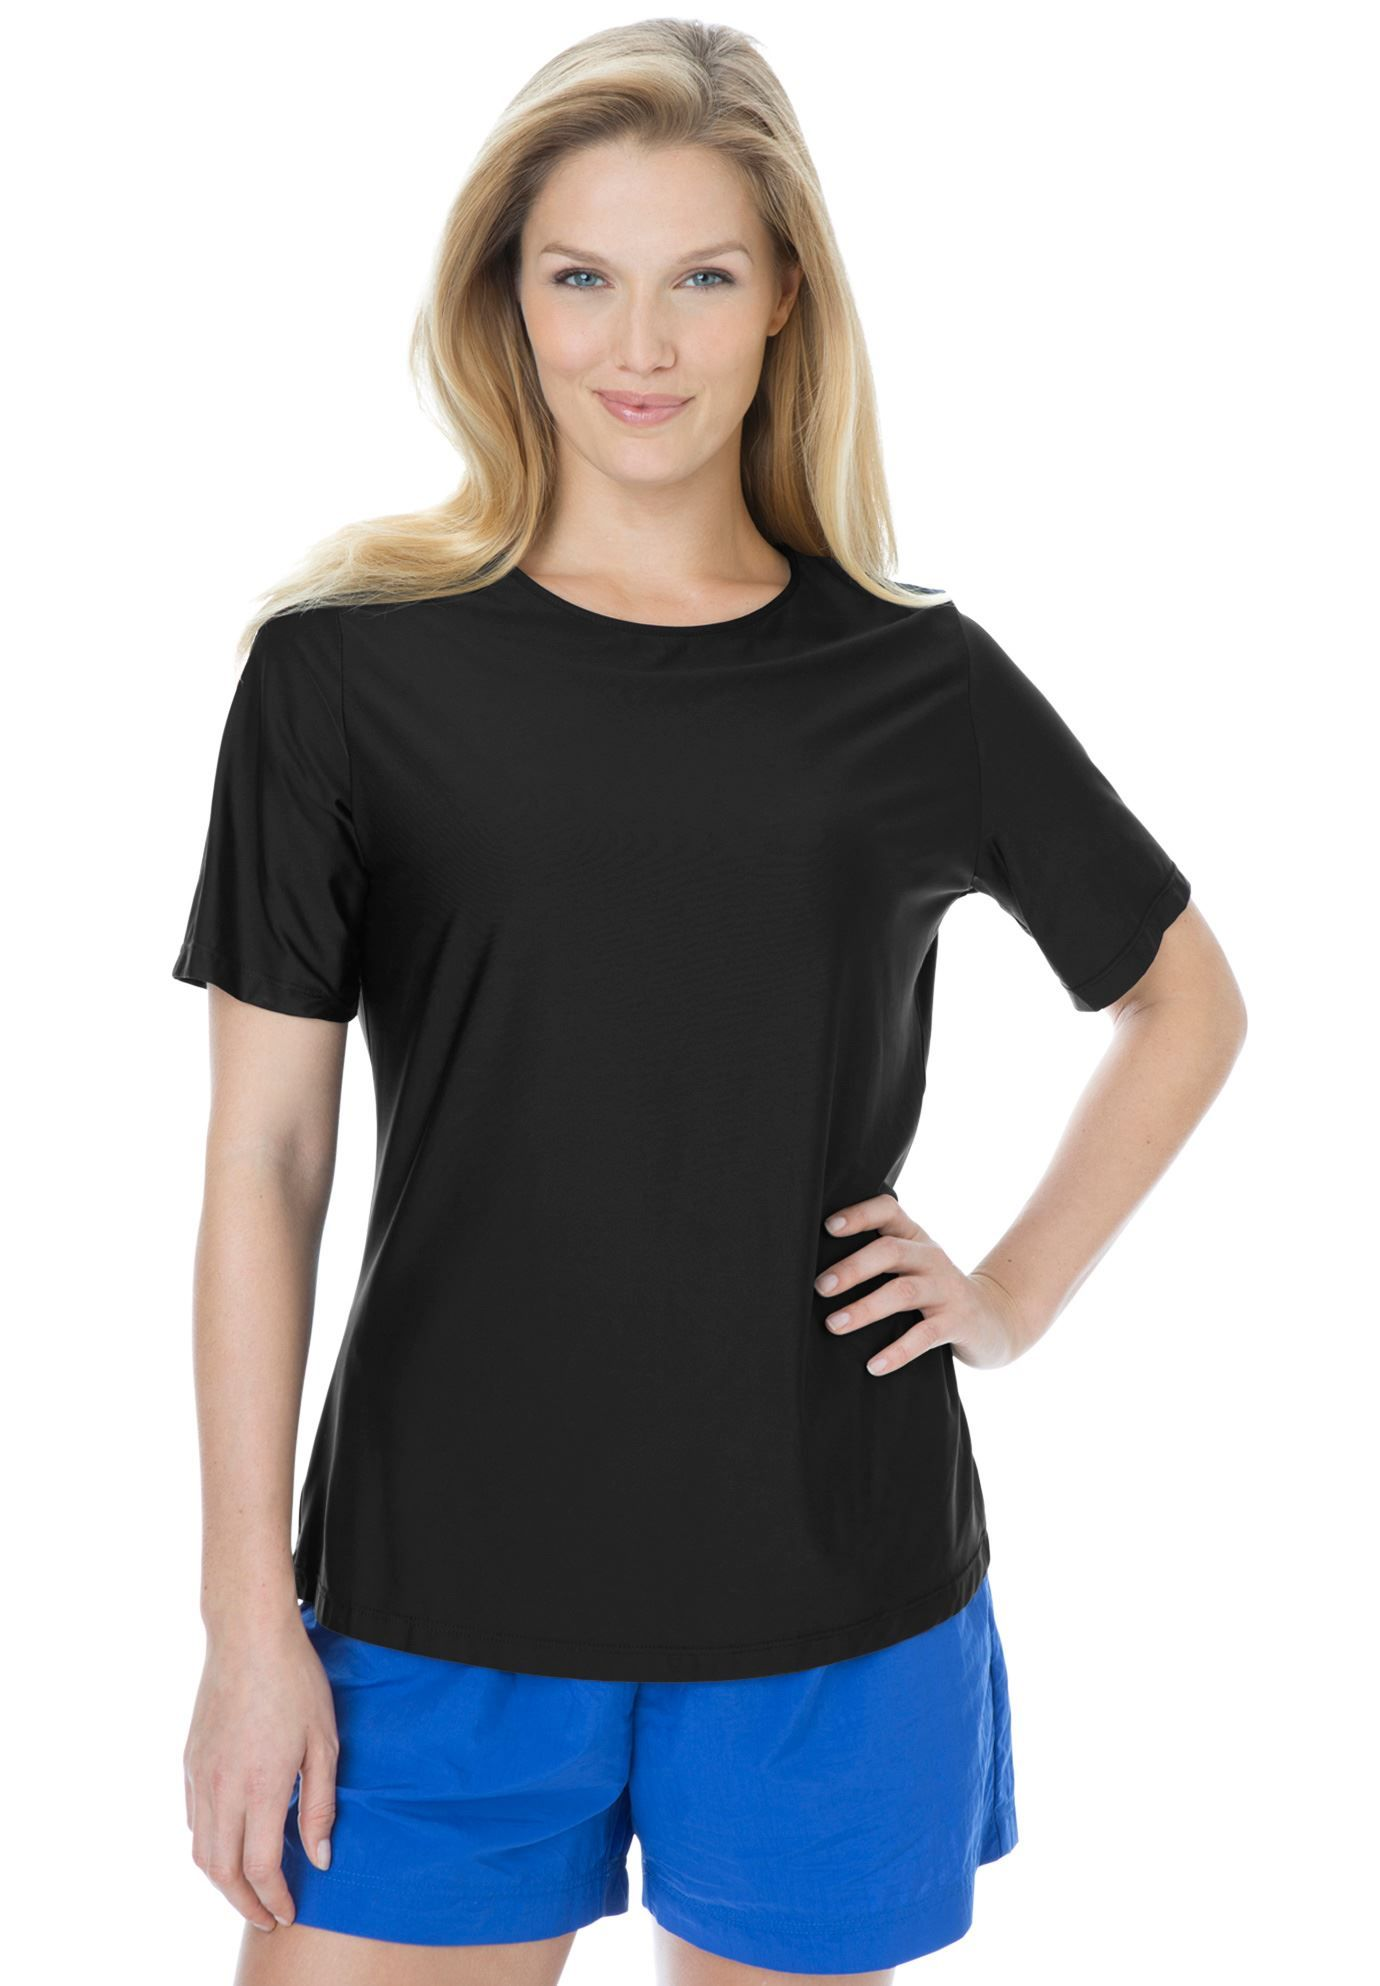 Plus Size Swim Tshirt coverup for sun protection 29.99